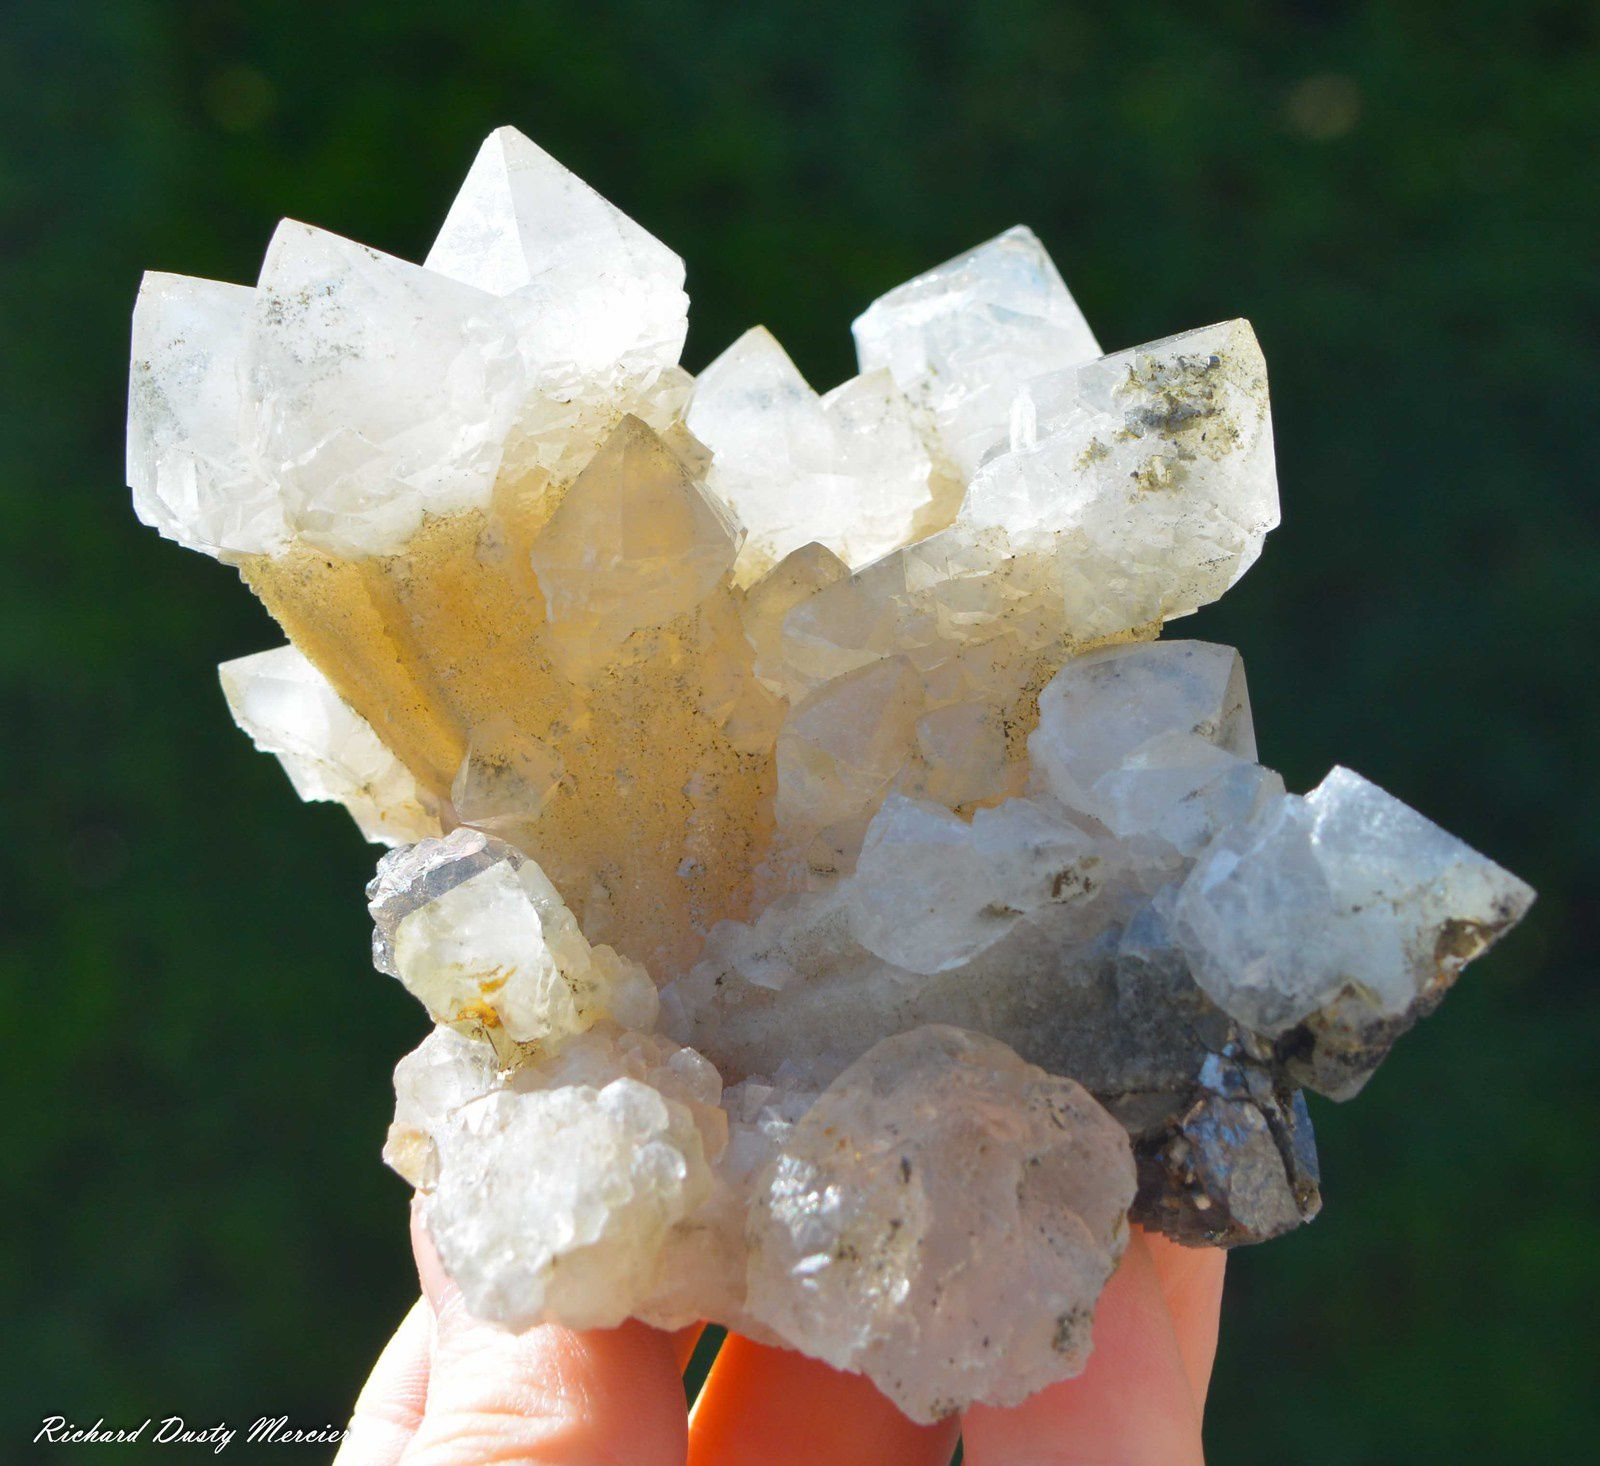 Calcite Quartz Scepter from Mongolia (Specimen and Photo: Richard Dusty Mercier)